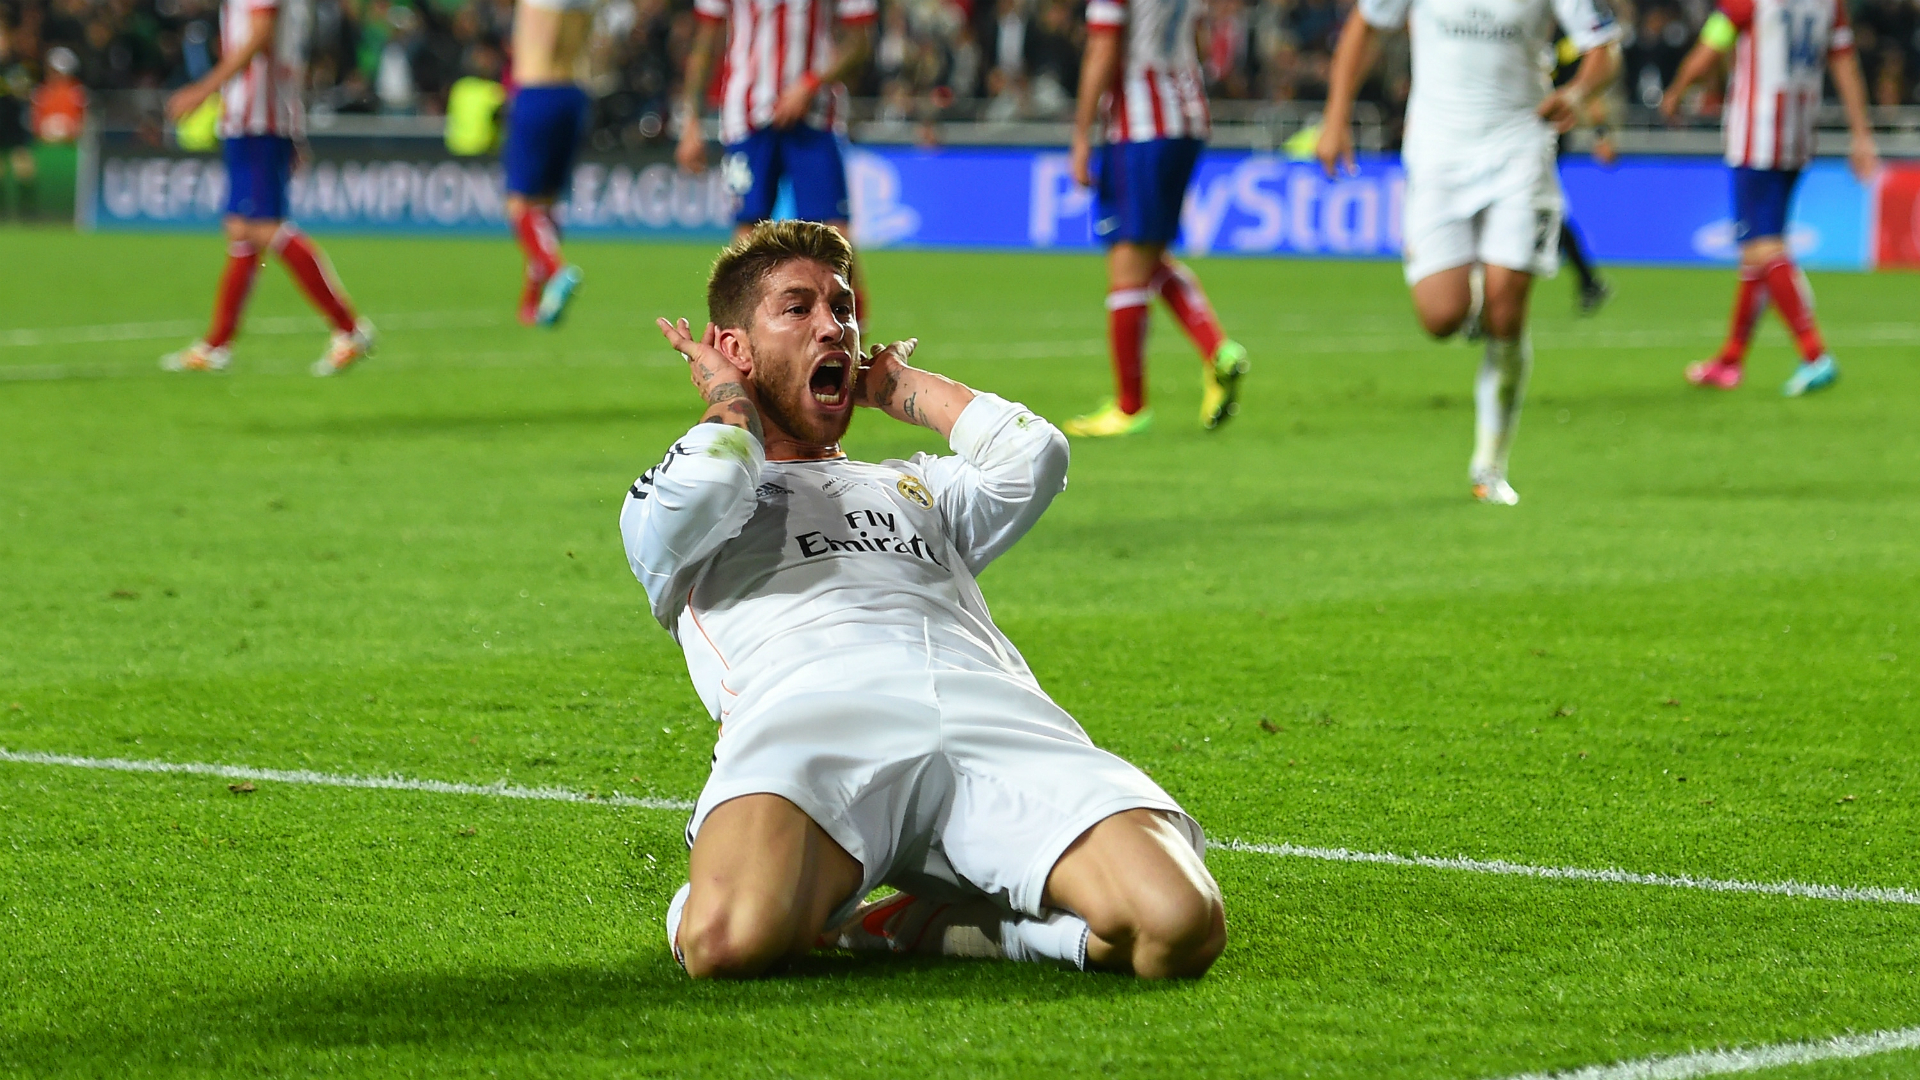 Ramos' goal in Lisbon may have changed history of European football - Modric